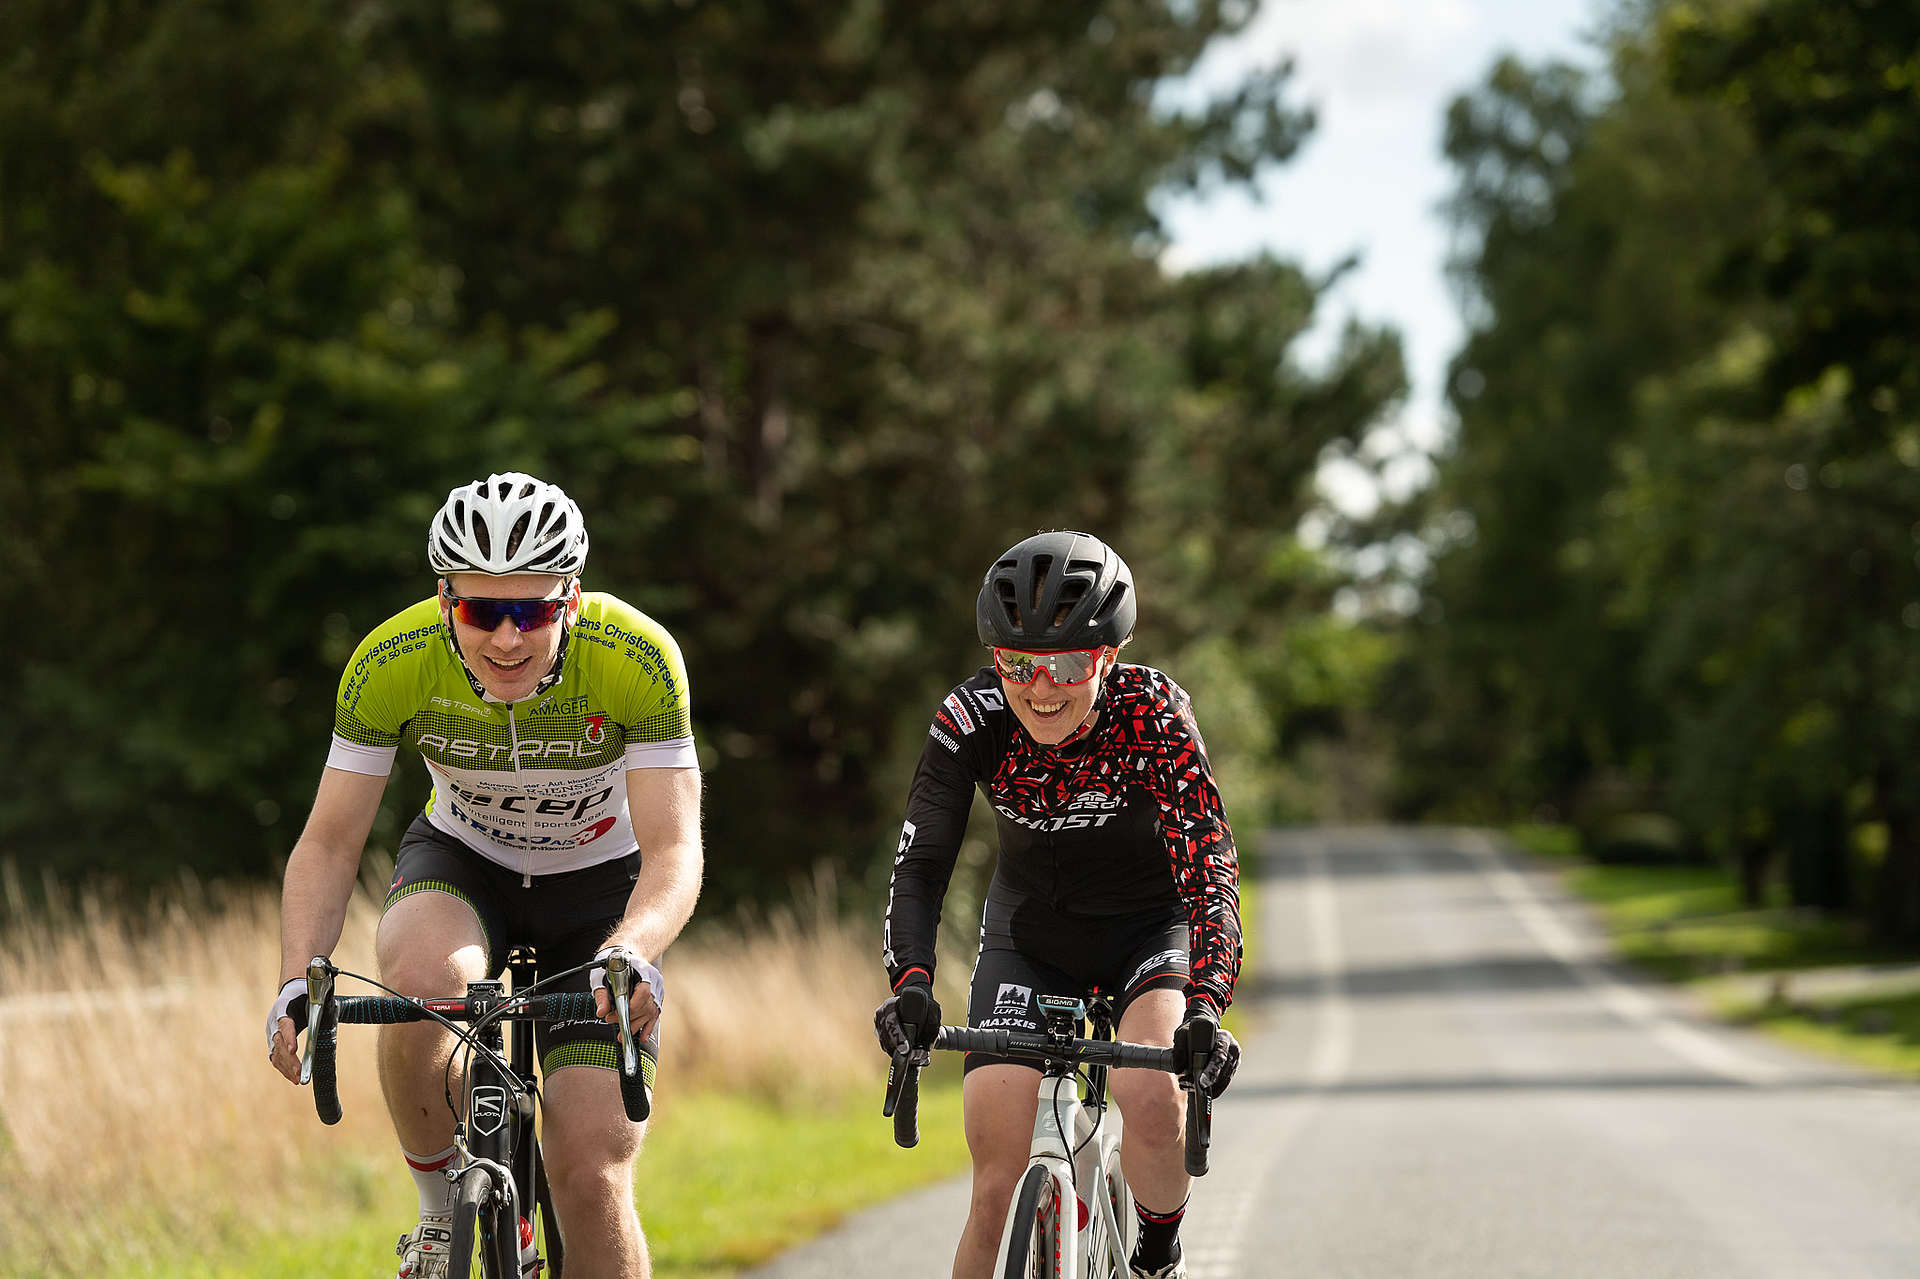 Caroline and Frederik Bohé are road cycling together.